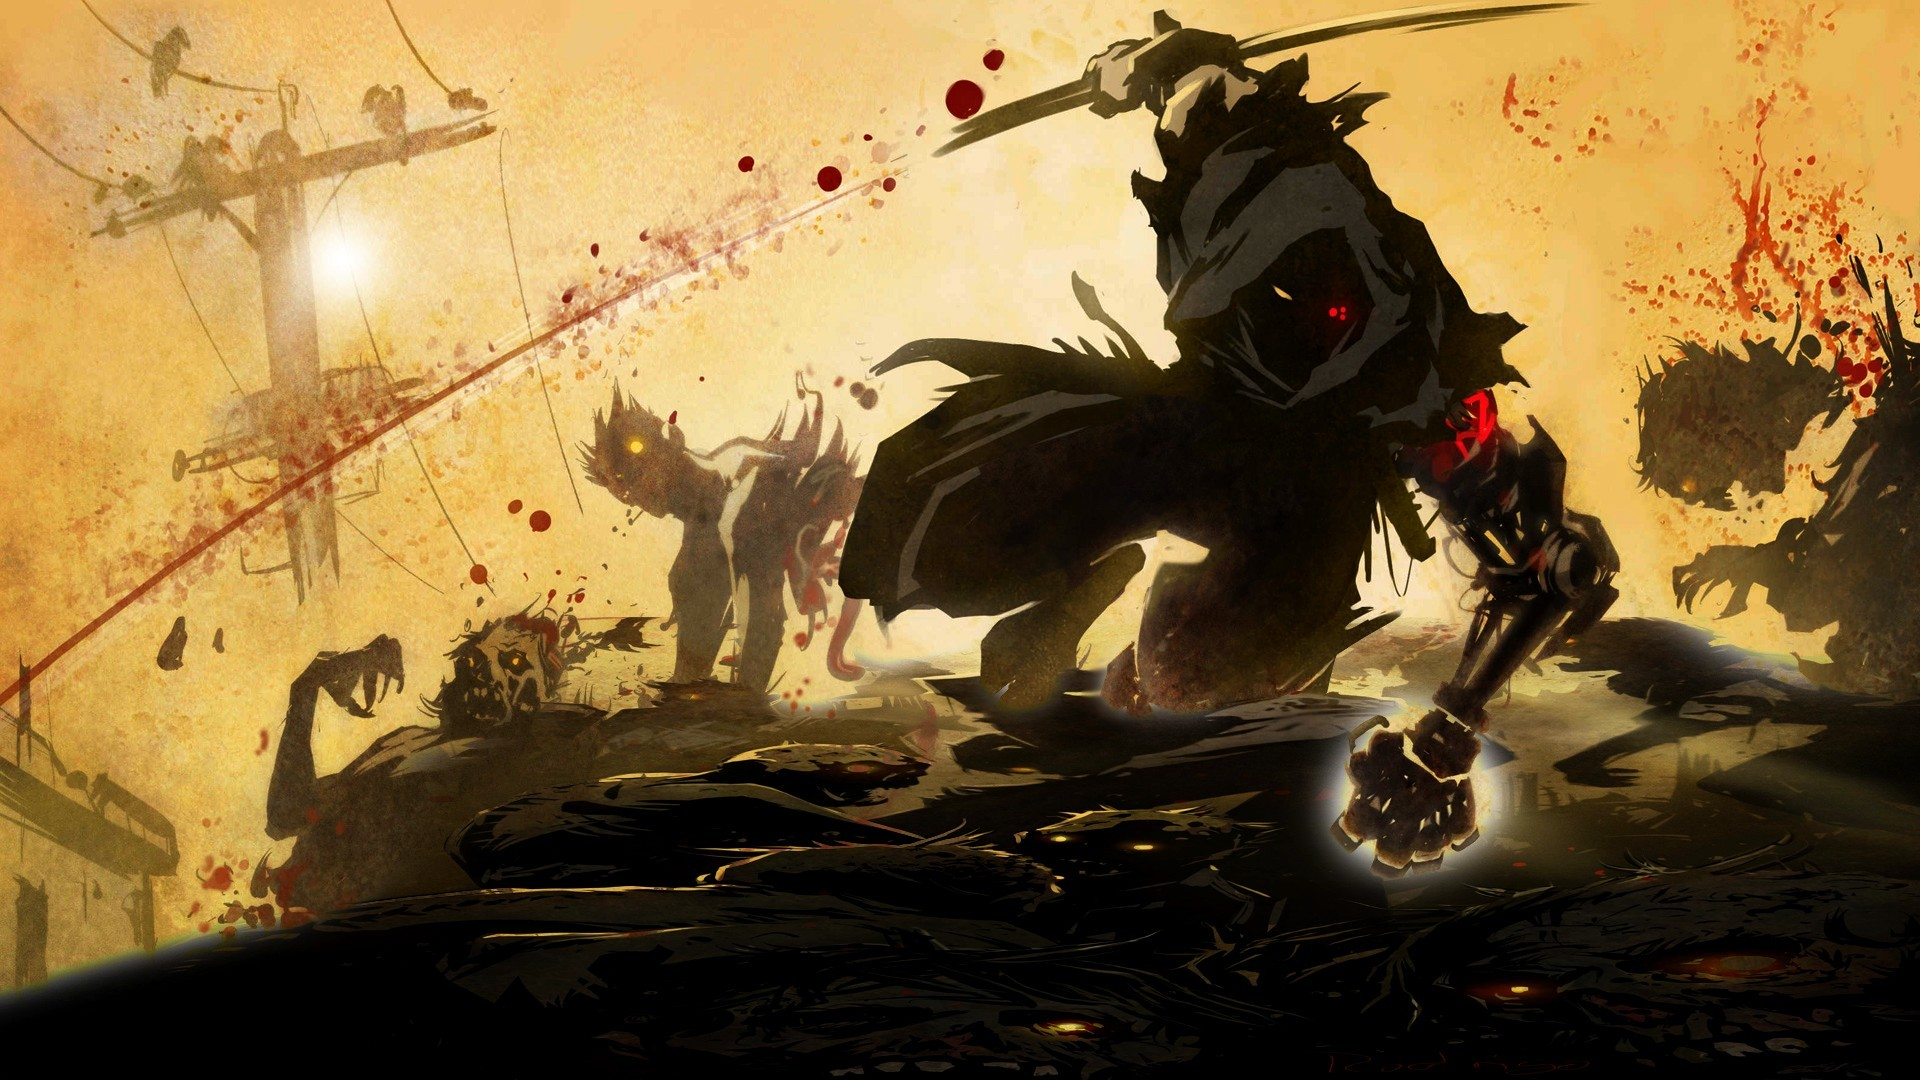 1920x1080 videogames anime warrior dark zombies blood wallpaper background .